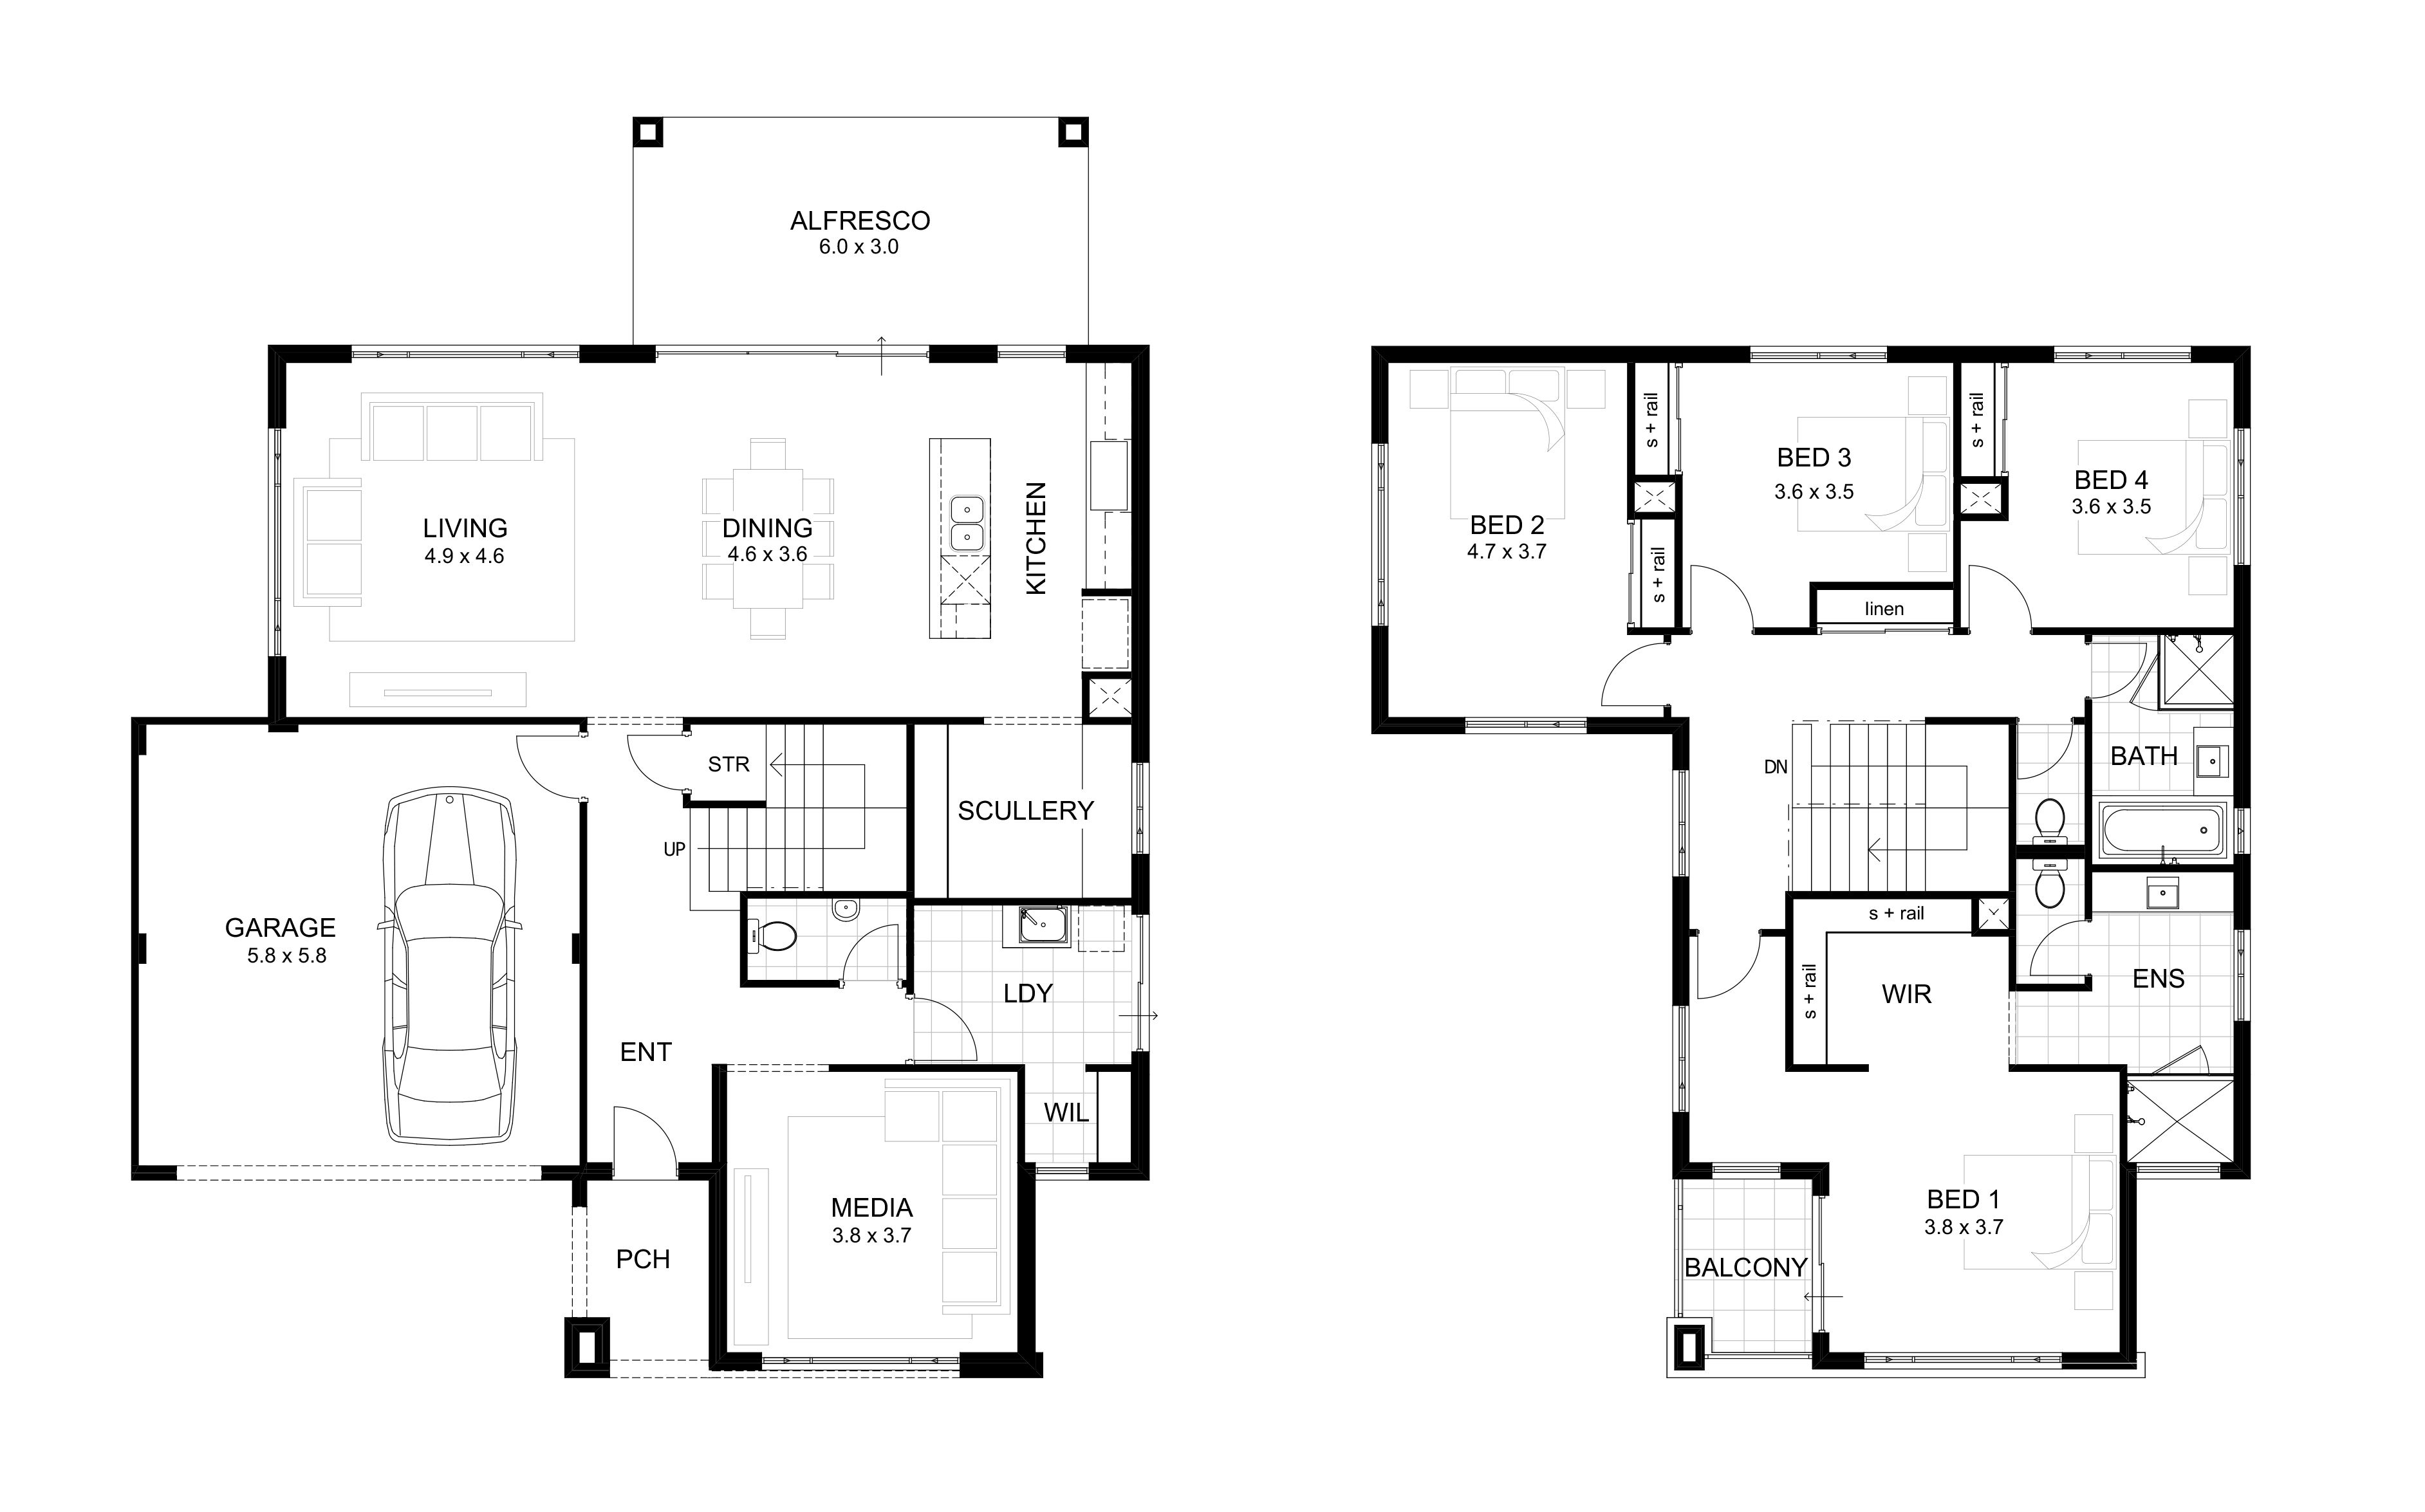 Double Storey Expression Range Perth Apg Homes Portsea Can Be Changed To Upside Double Storey House Plans Modern House Floor Plans Architectural Floor Plans